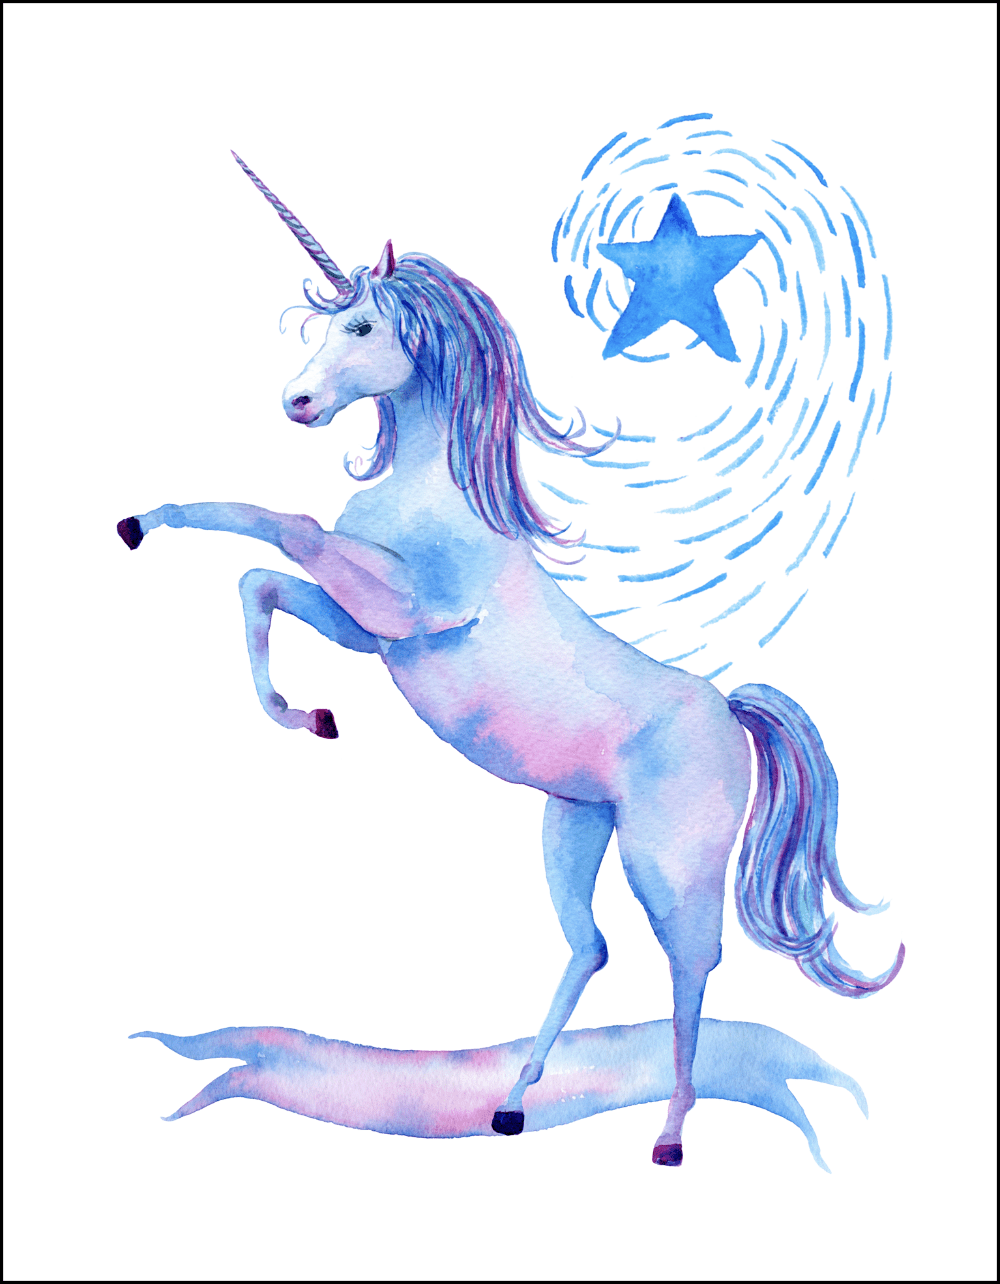 - Unicorn-4u: Free Printable Watercolor Unicorn Pictures - Oh My